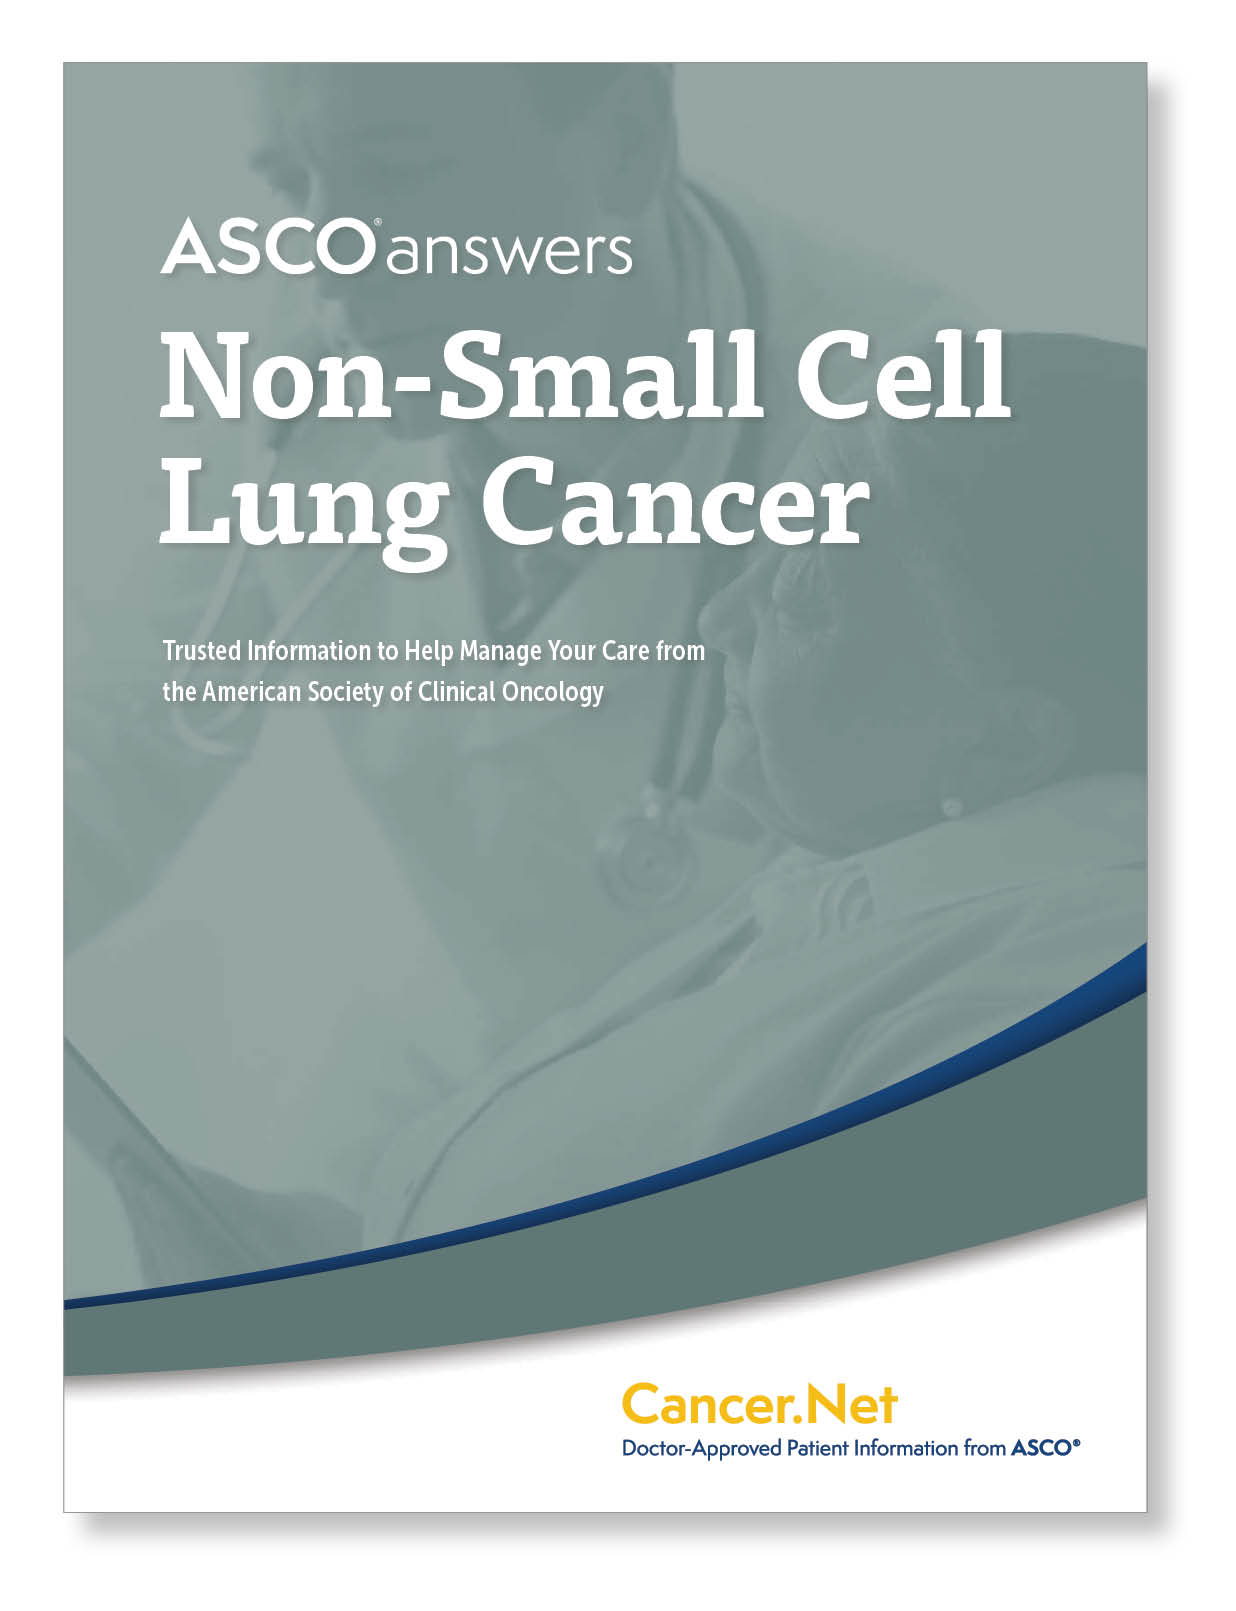 ASCO Answers Guide: Non-Small Cell Lung Cancer Updated with New AJCC Staging (pack of 25 guides)